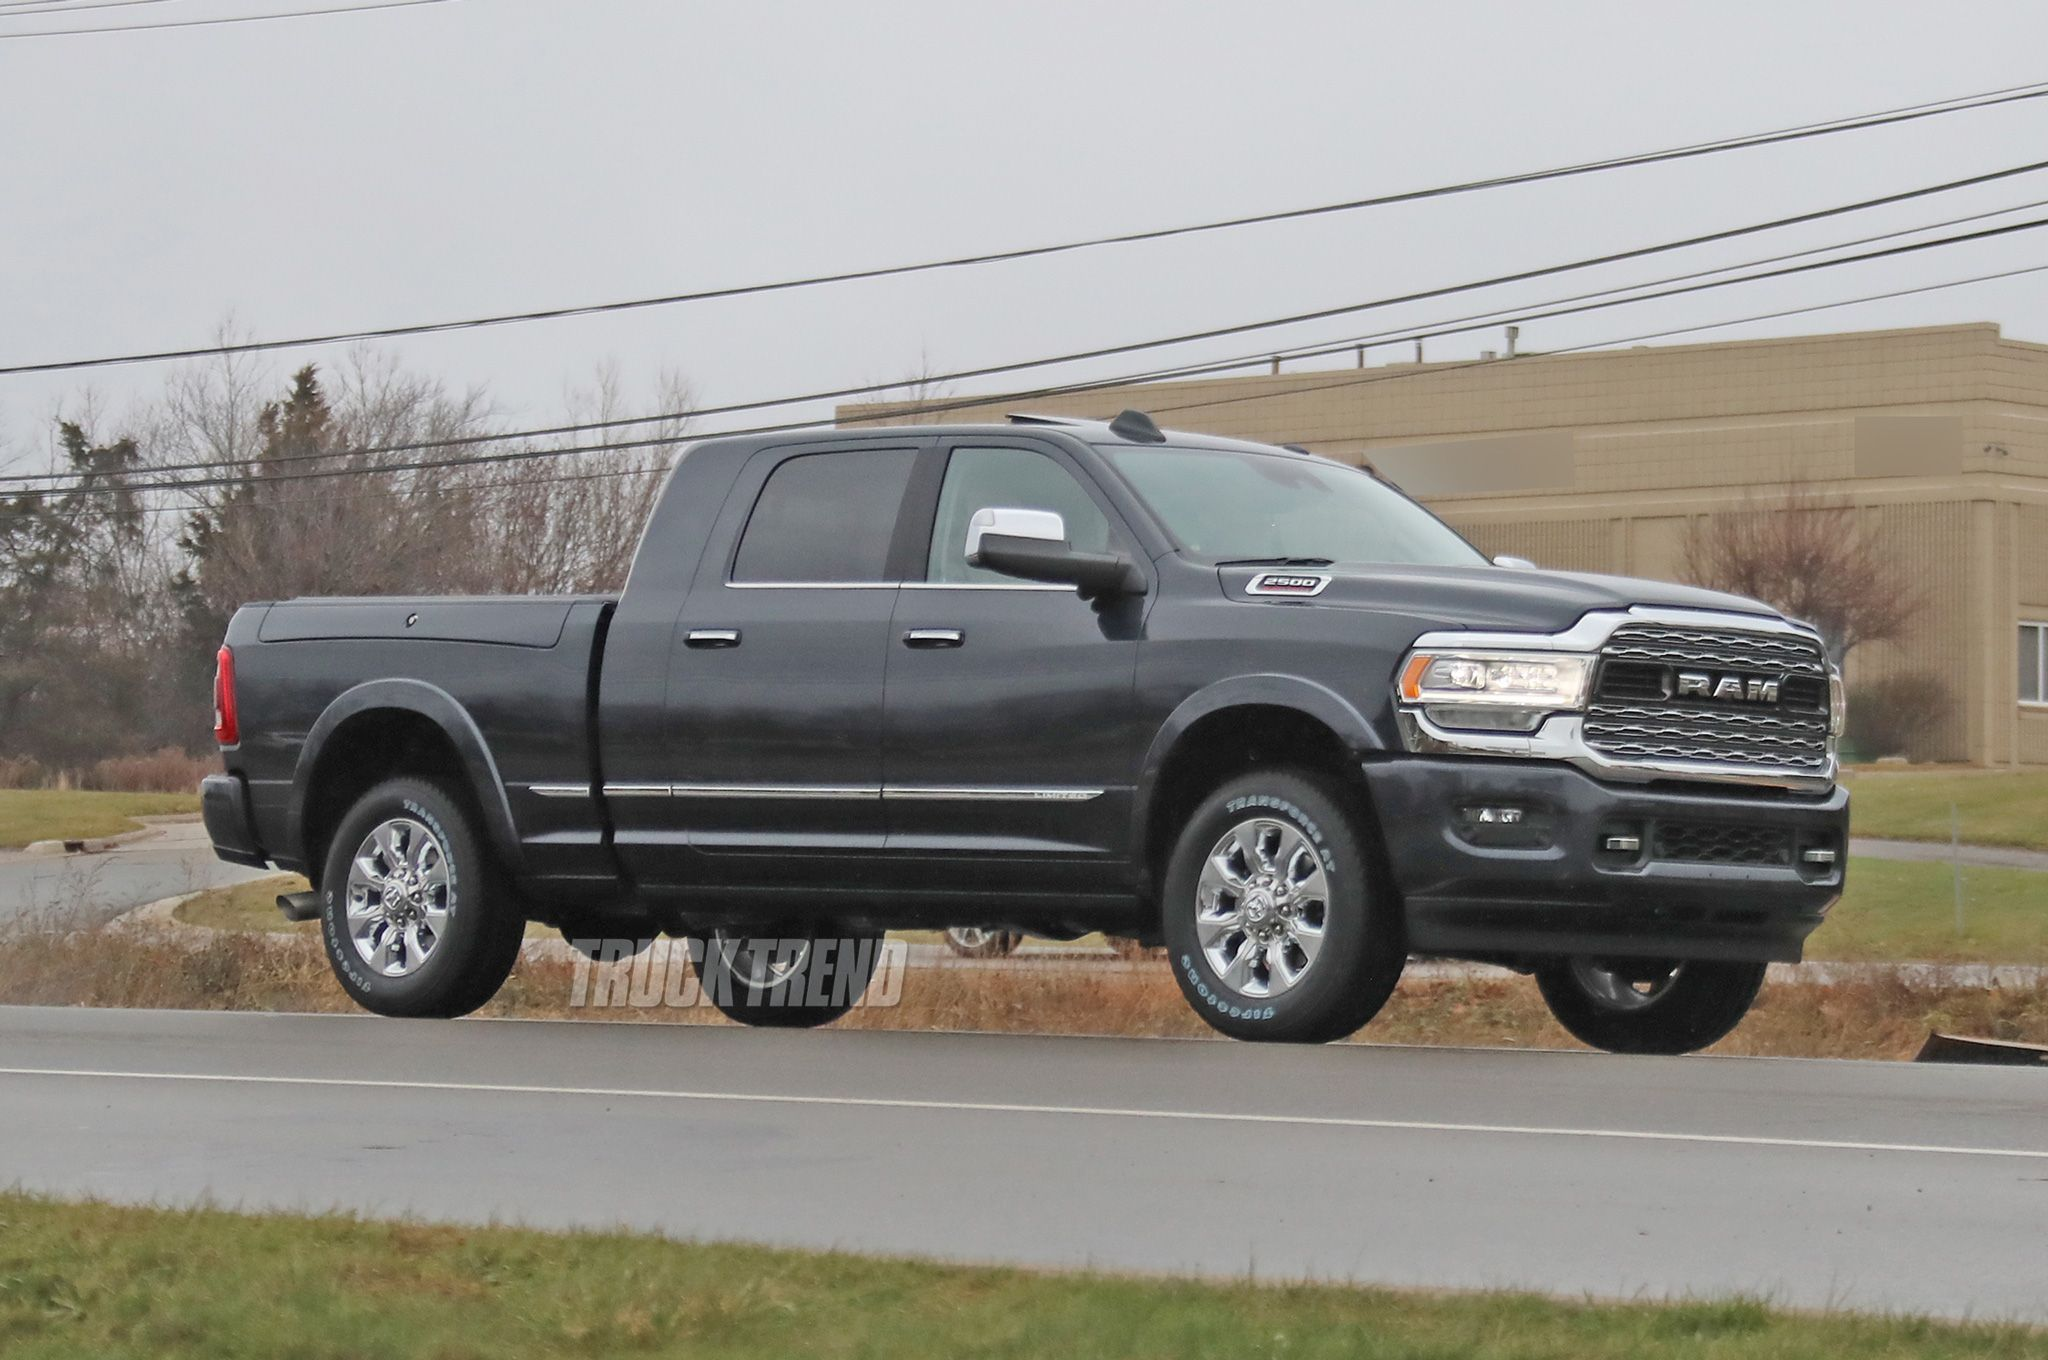 53 The Best 2020 Dodge Ram 2500 Pricing